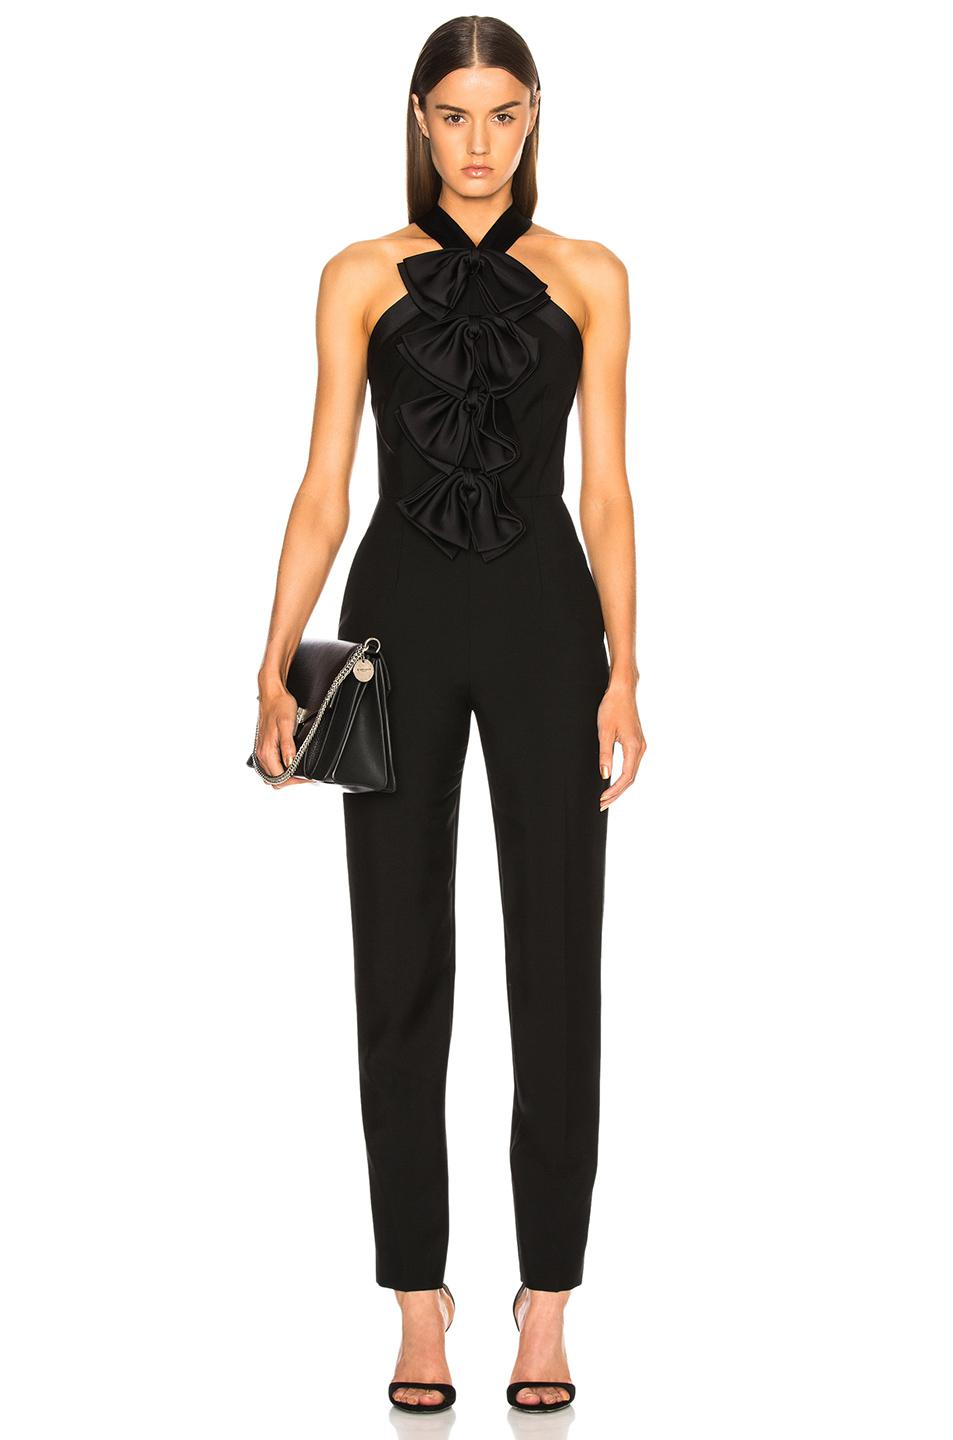 polka-dot tailored jumpsuit - Black Givenchy Buy Cheap Release Dates Enjoy Shopping 8SMTyXN4py